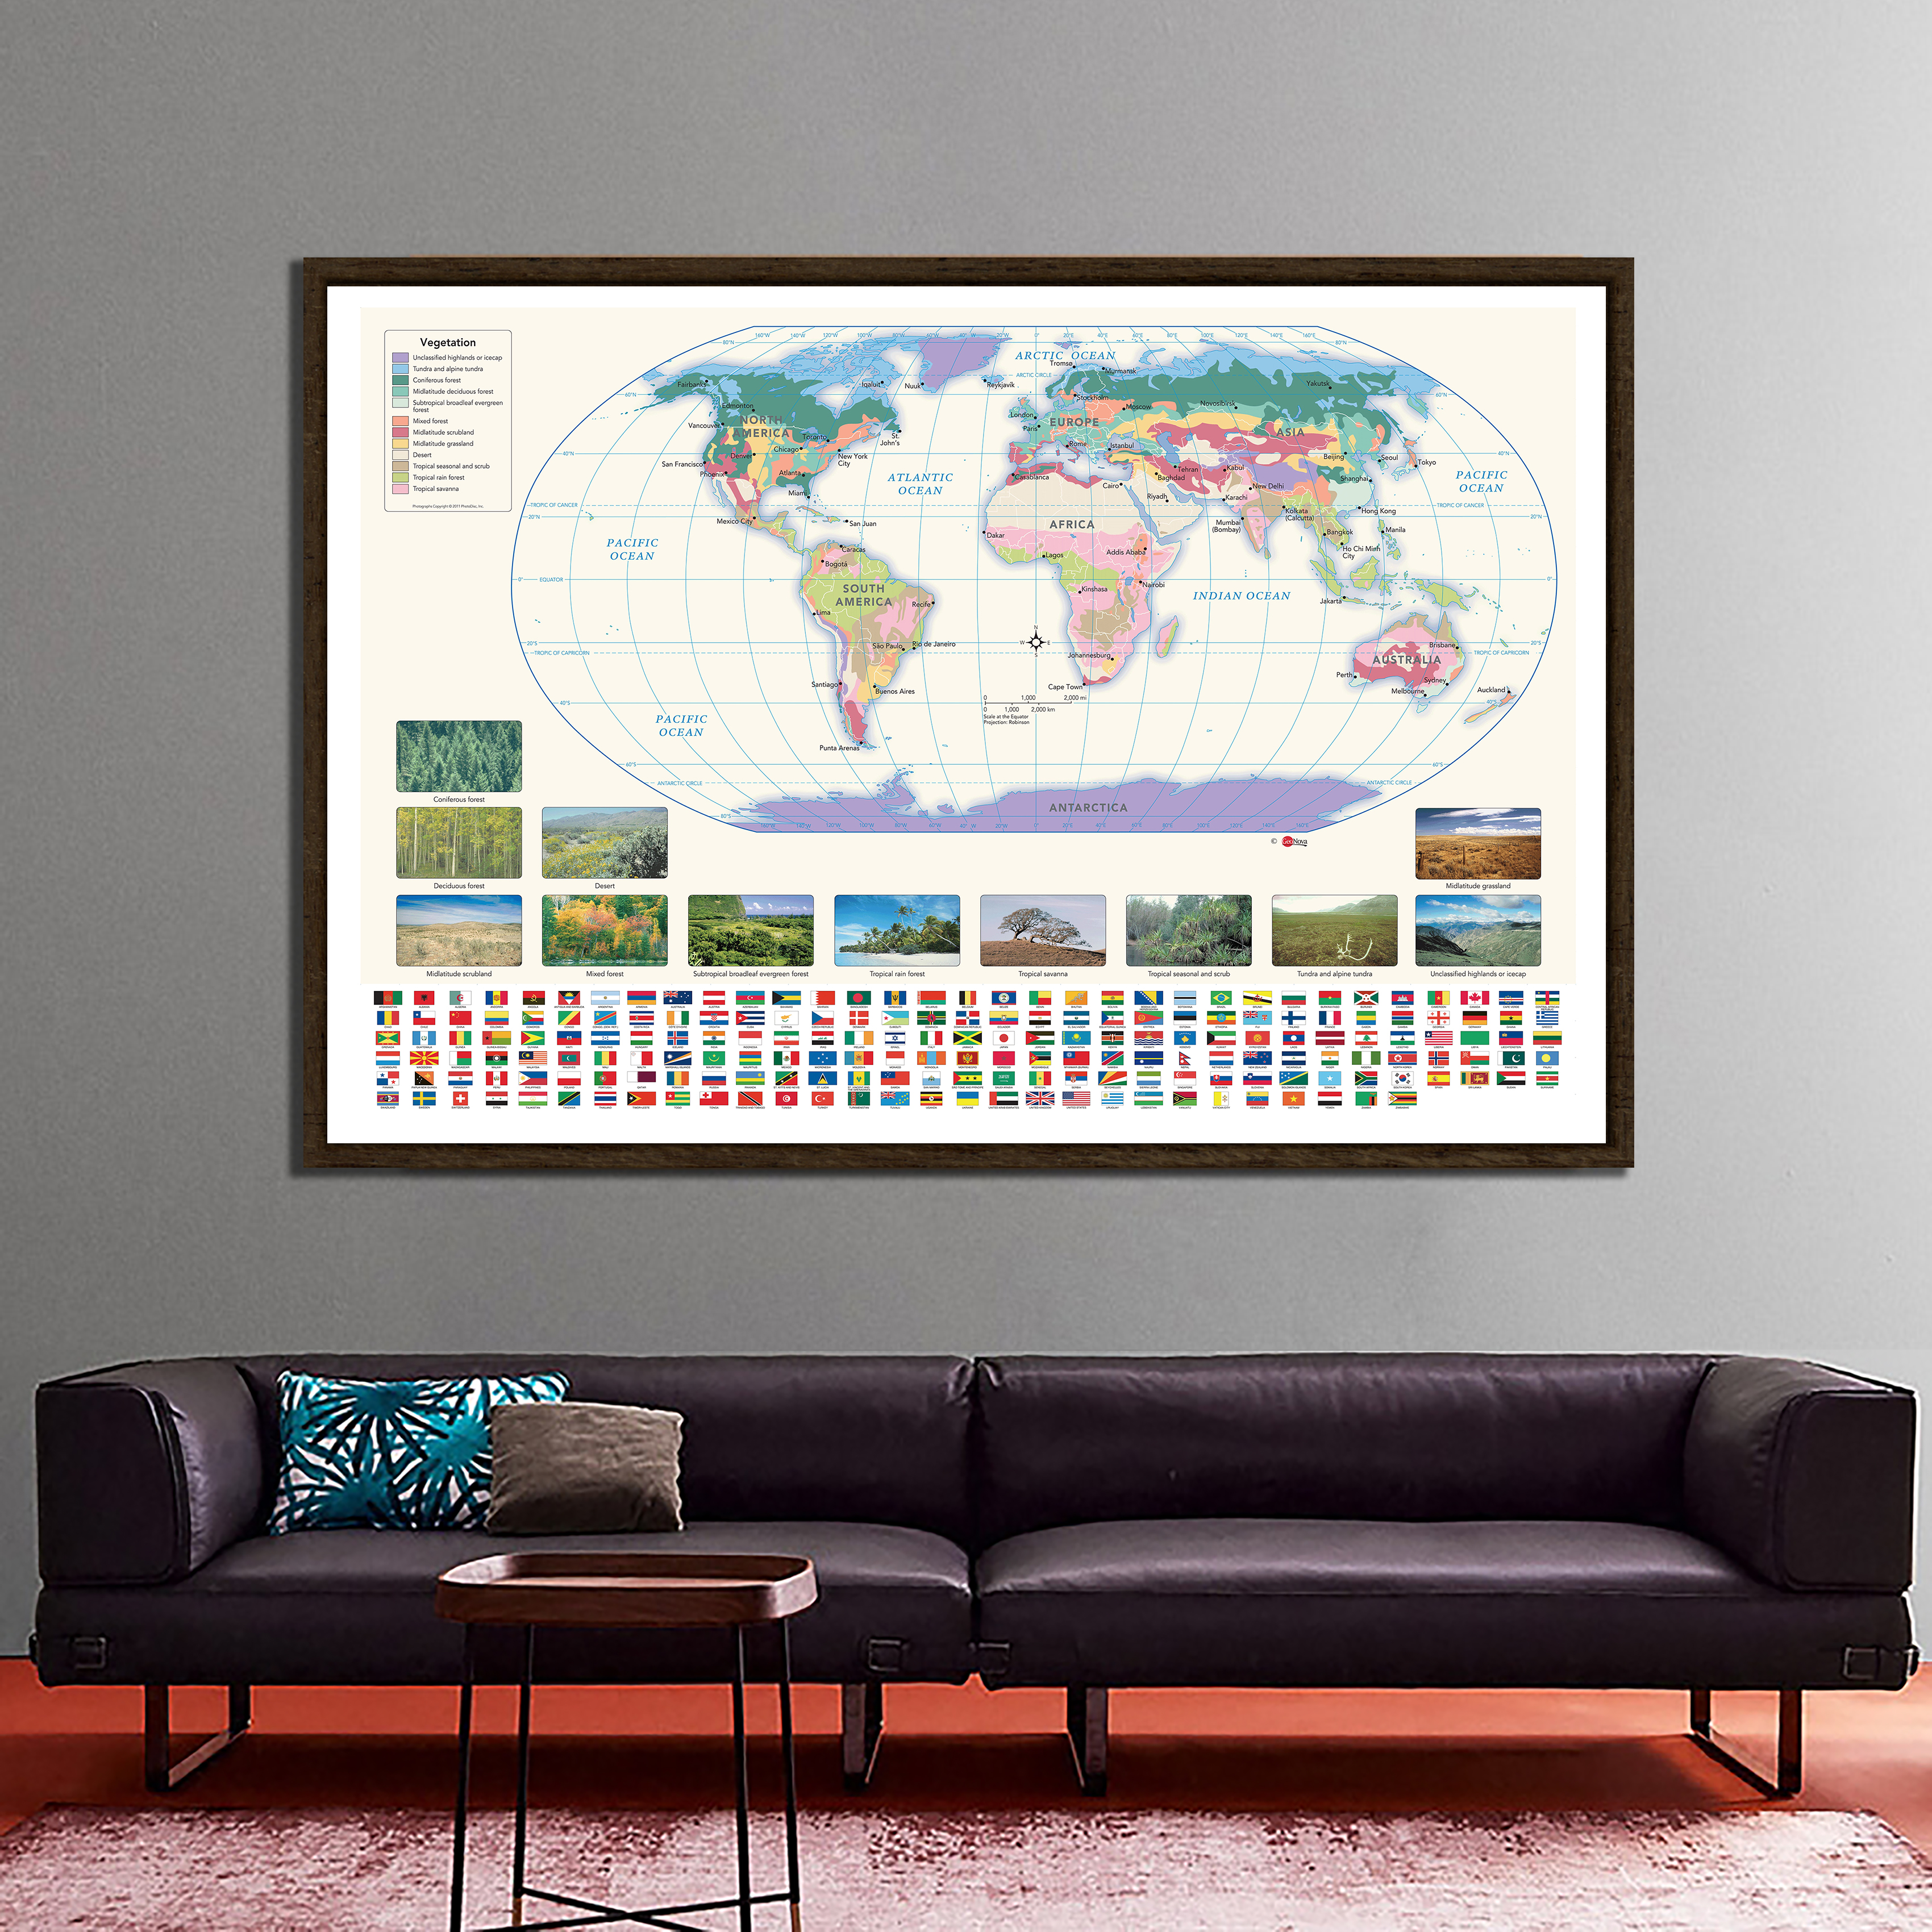 150x100cm The World Non-woven Waterproof Map With Vegetation Map And National Flags